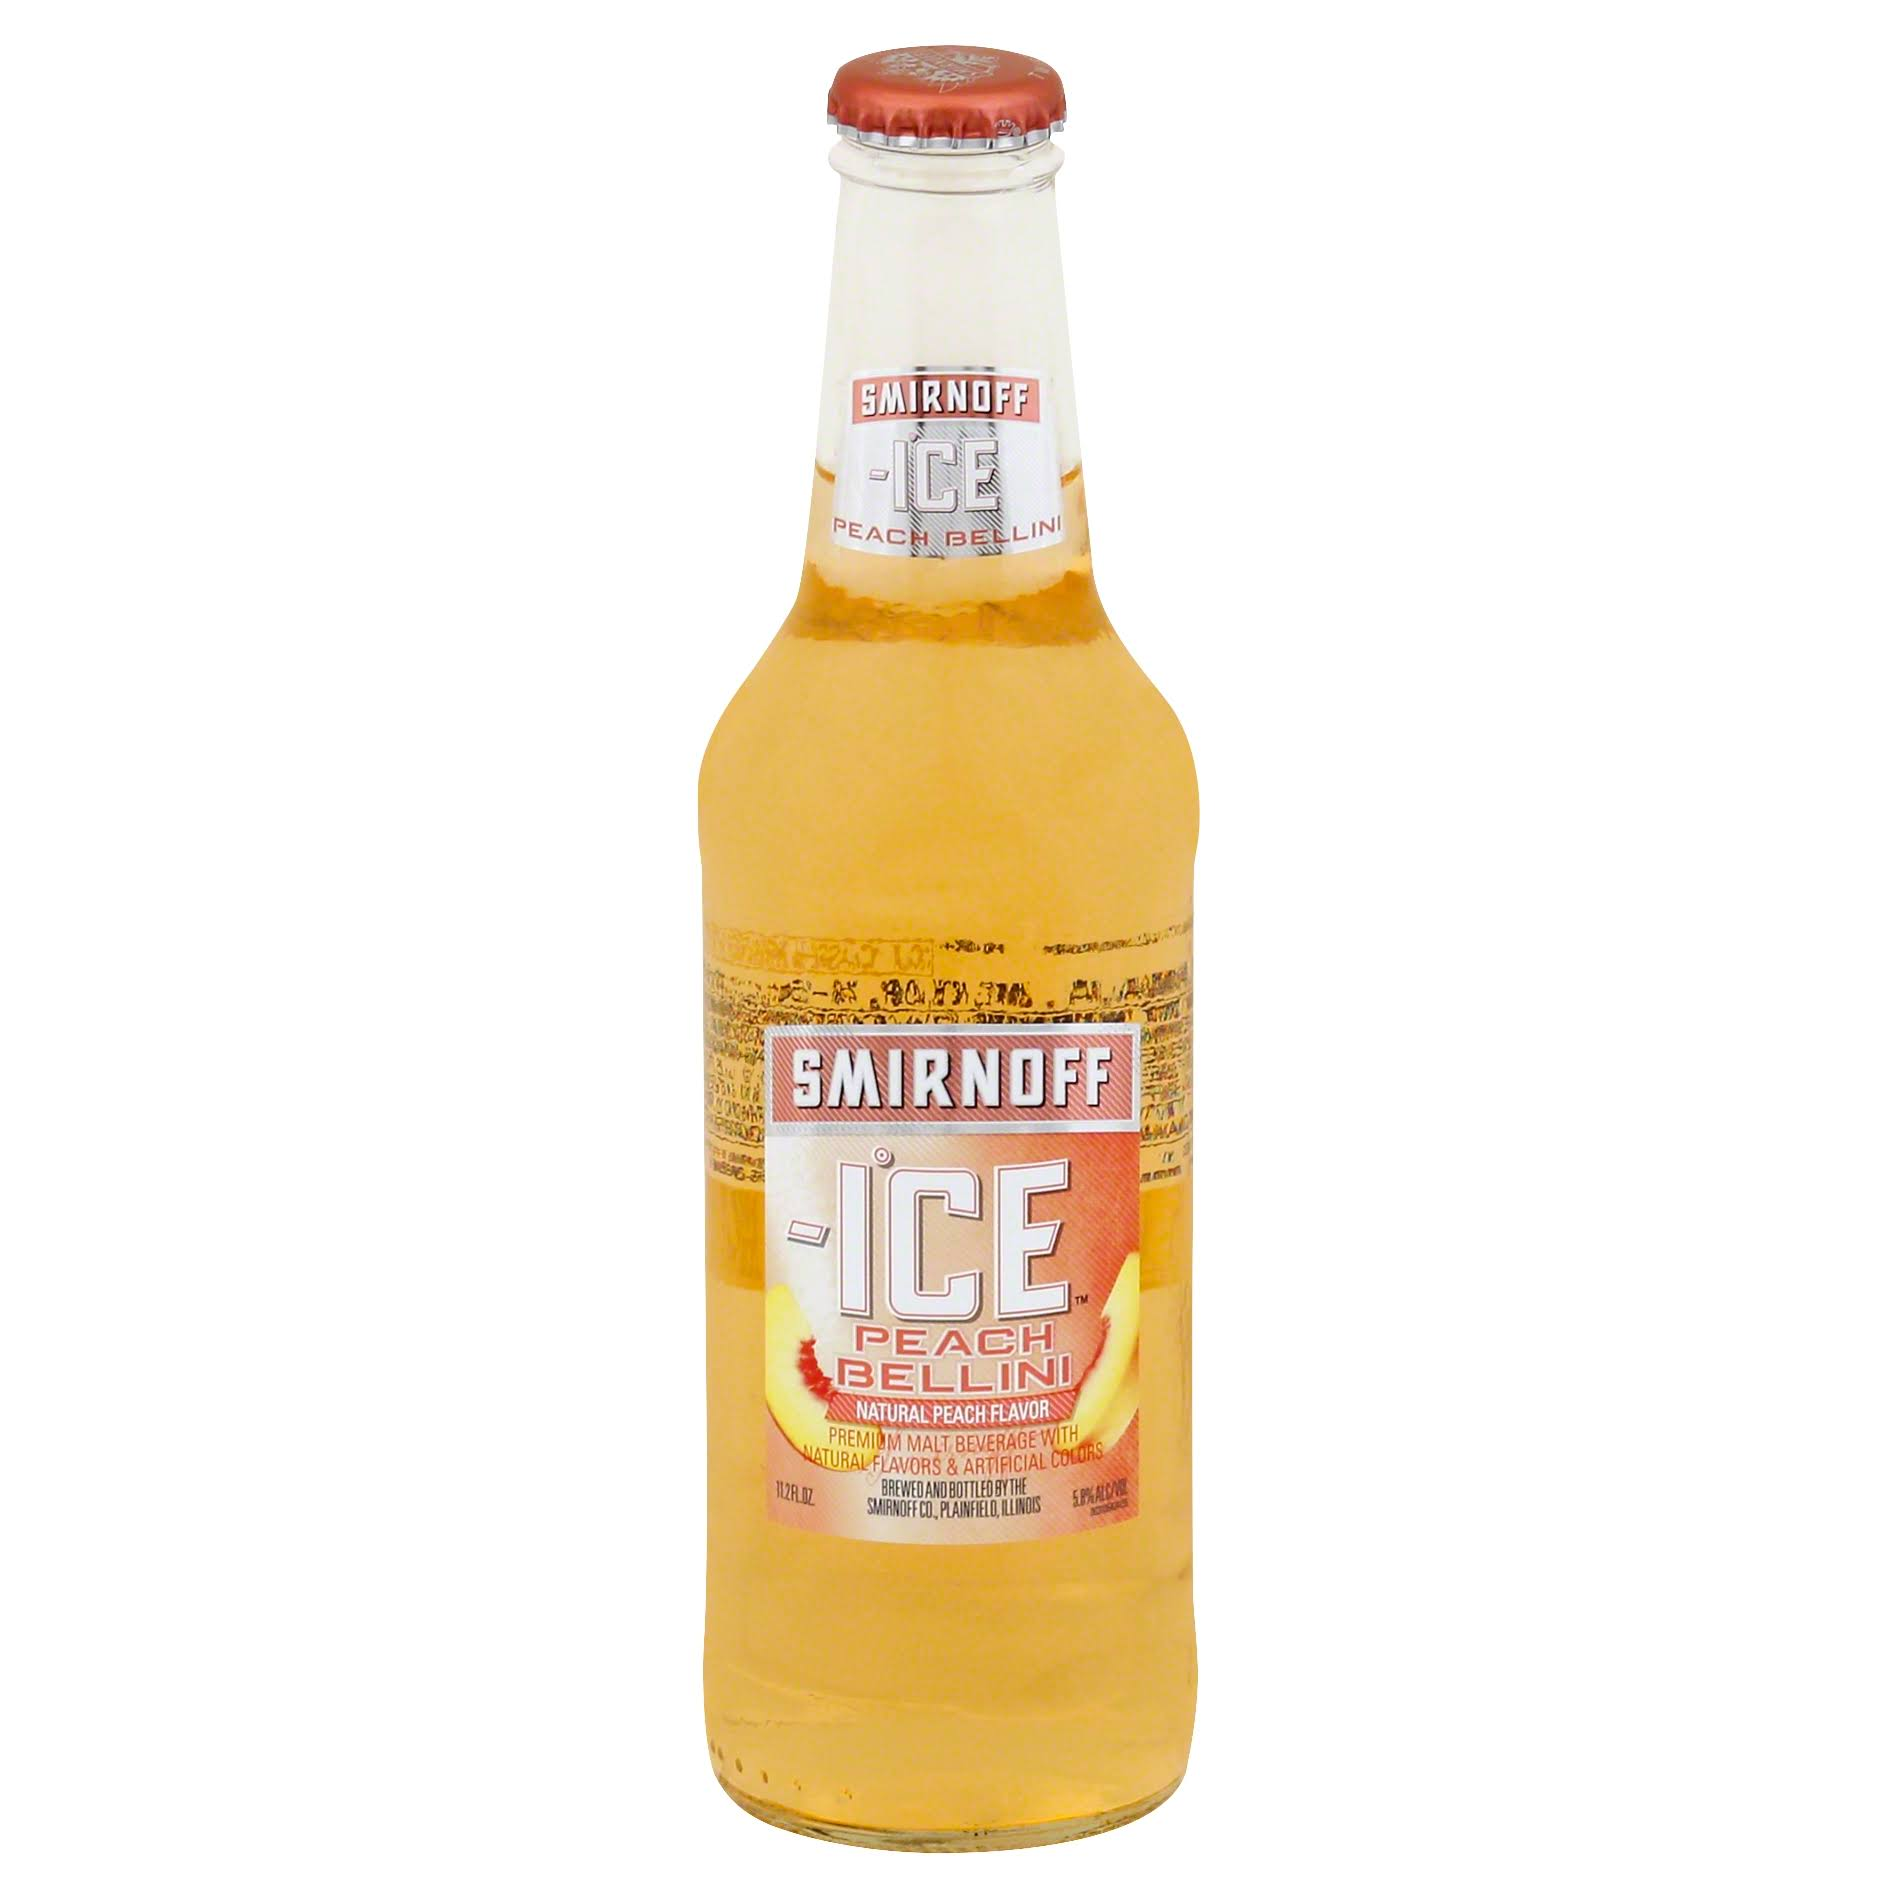 Smirnoff Ice Malt Beverage, Premium, Peach Bellini - 11.2 fl oz